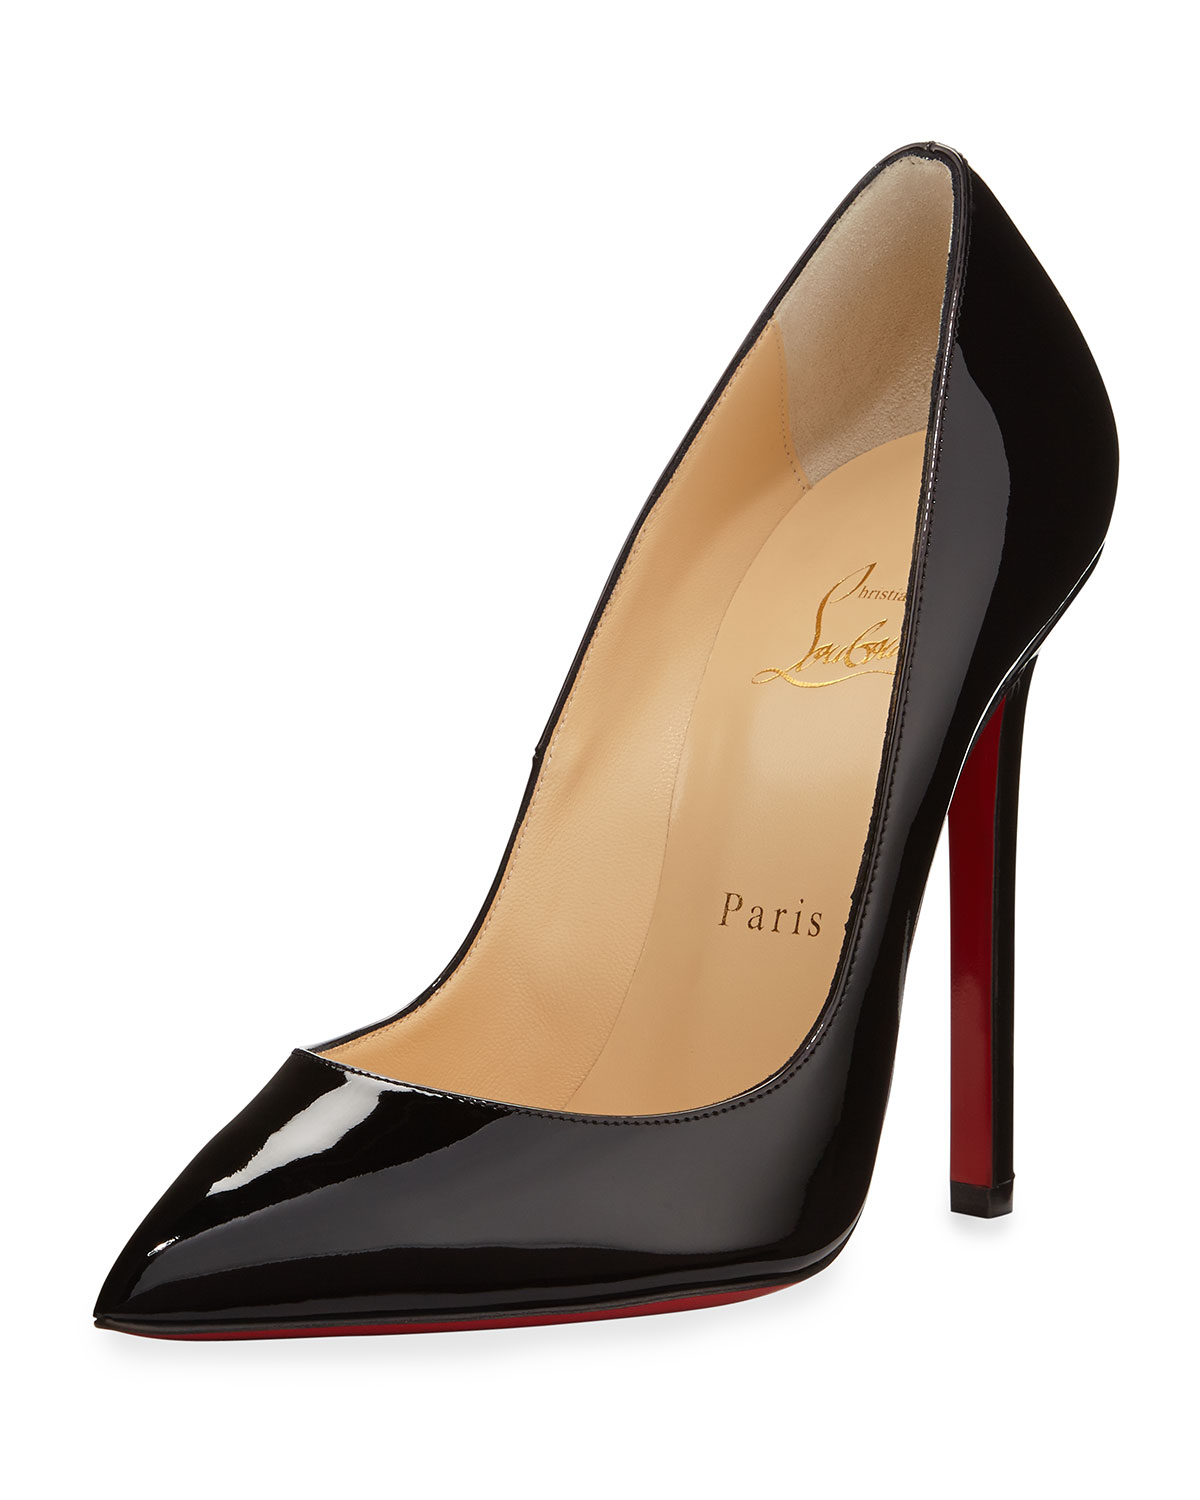 22ff8f0748f Christian Louboutin Pigalle Patent Leather Red Sole Pump